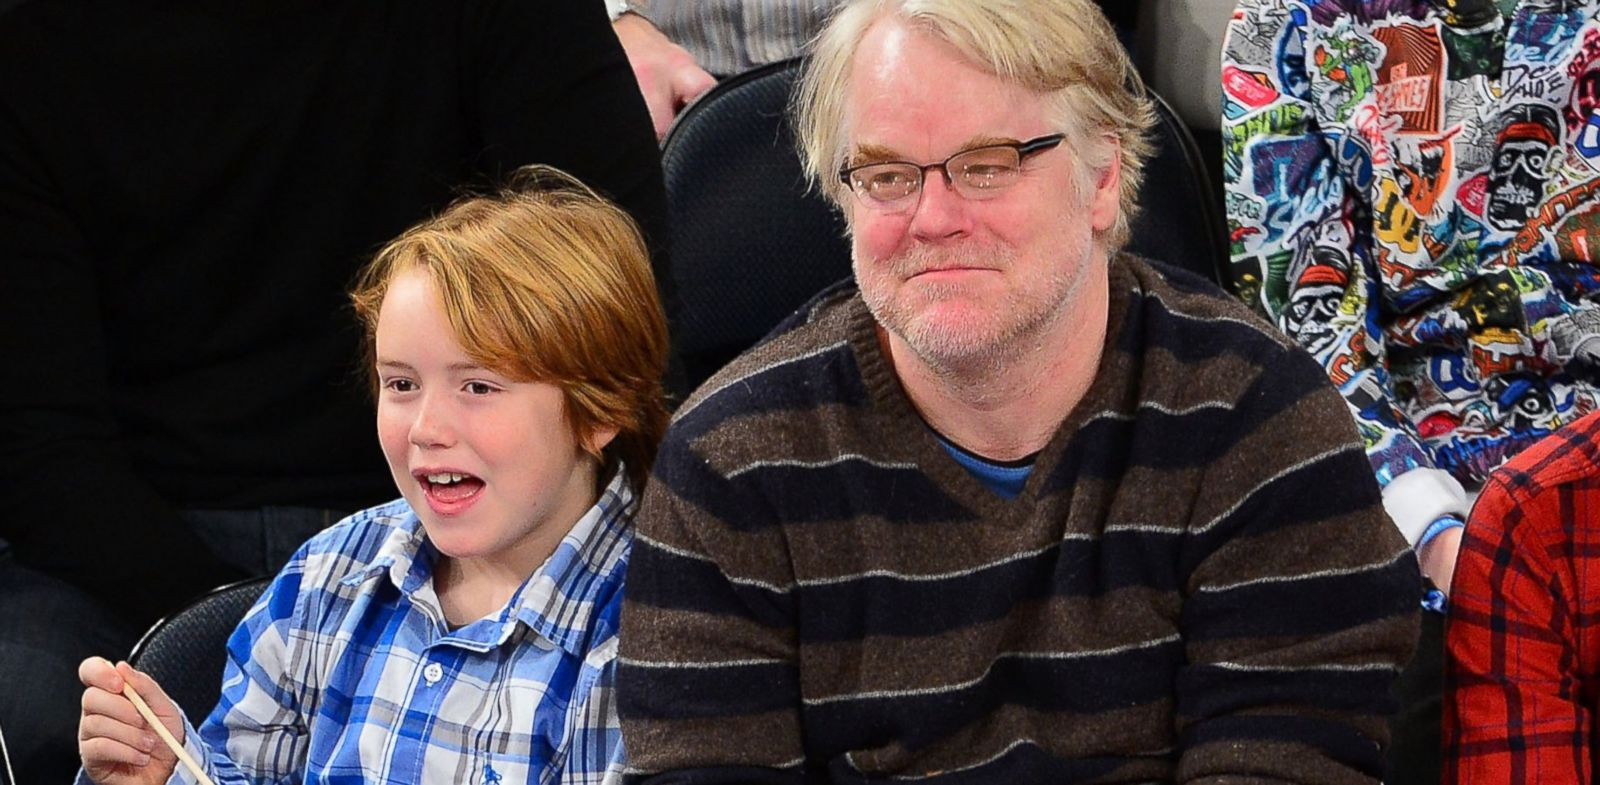 PHOTO: Philip Seymour Hoffman and son Cooper Alexander Hoffman attend the Detroit Pistons vs New York Knicks game at Madison Square Garden, Nov. 25, 2012 in New York City.